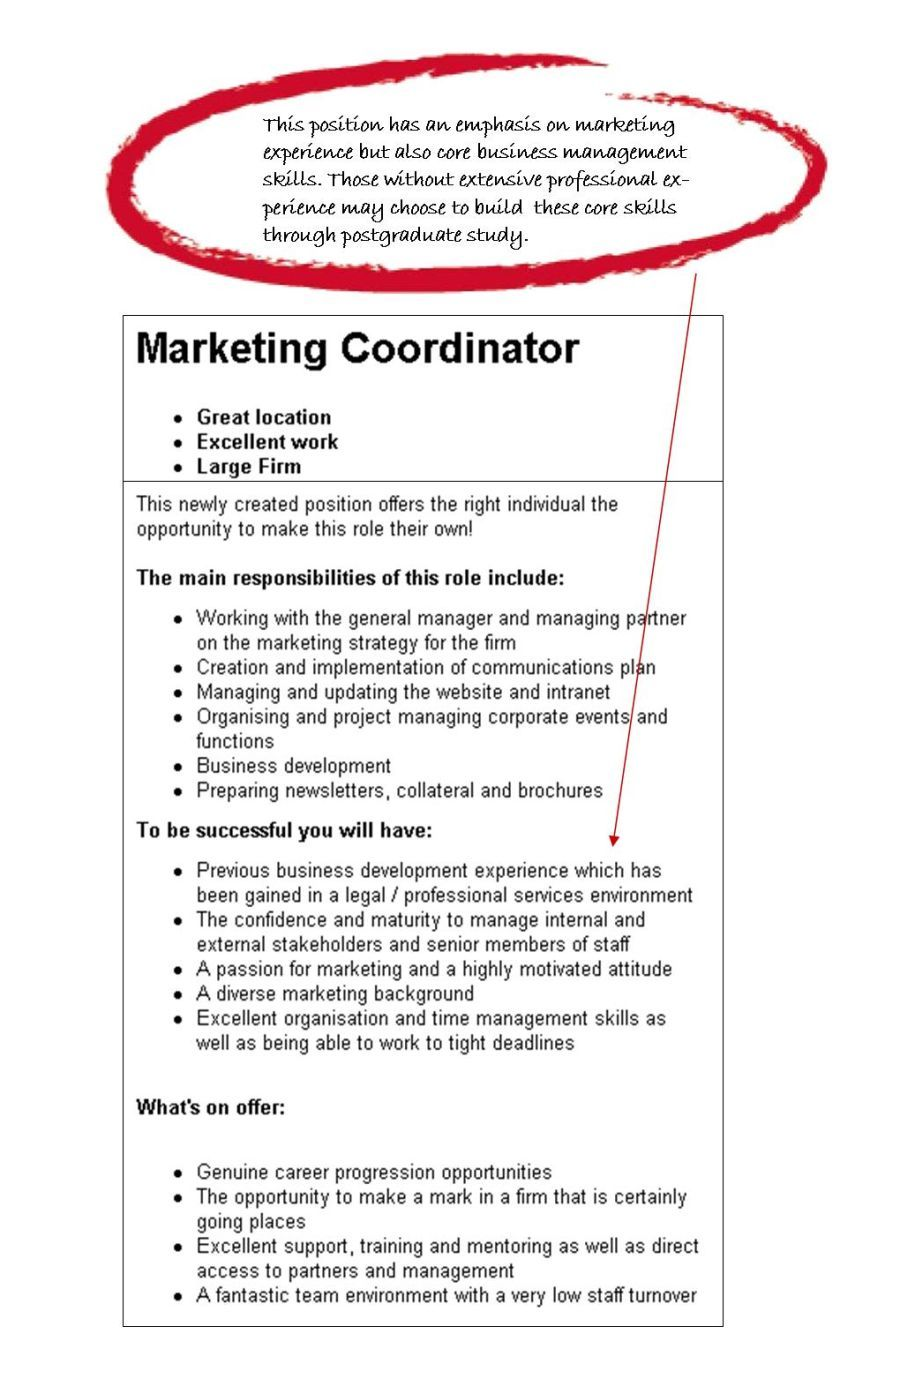 A Good Objective For A Resume Objectives For Resume  Resume  Pinterest  Resume Objective And